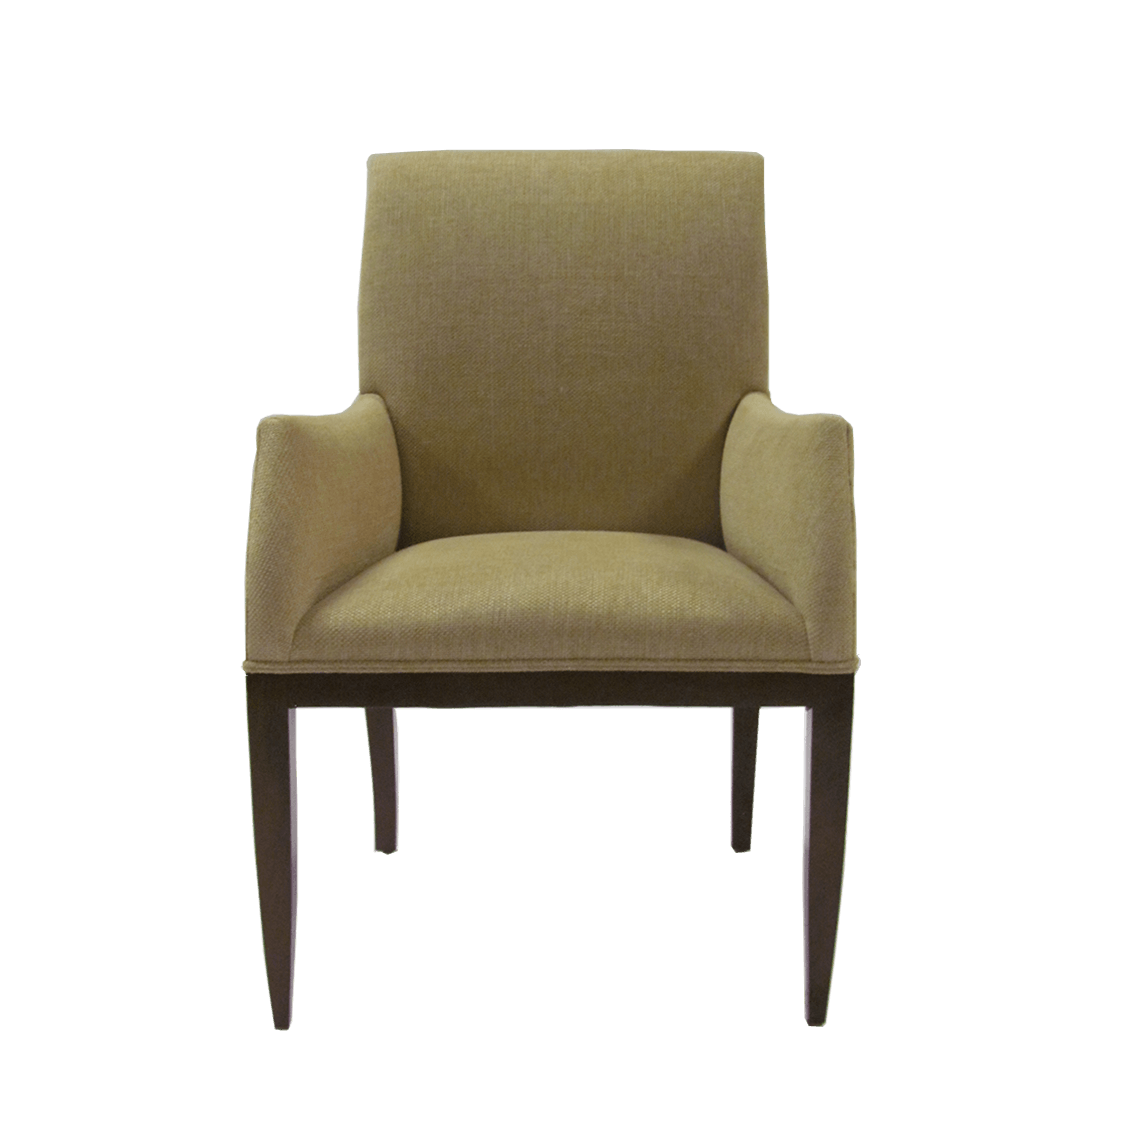 254113_Artistic_Frame_Dolce_Arm_Chair